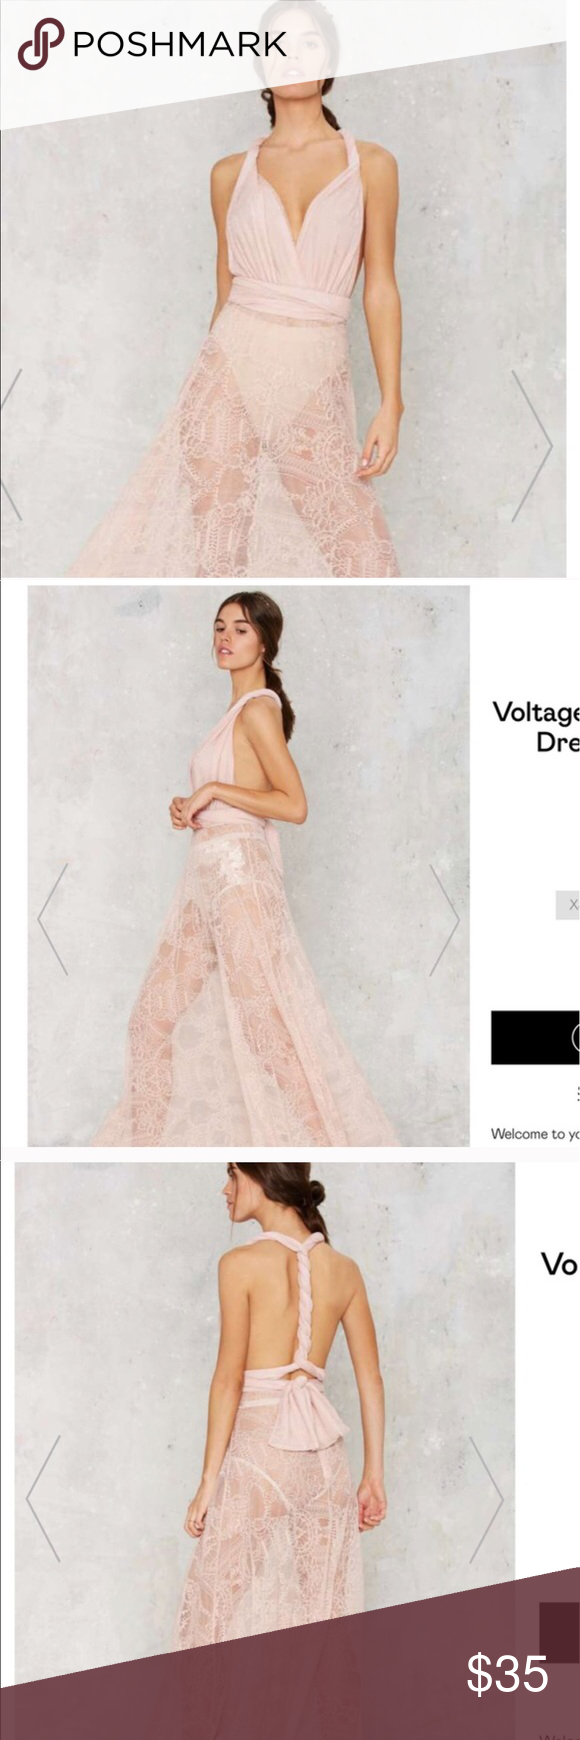 Pink see through lace dress  Long lace sheer dress pink nude  Sheer dress Nude and Models